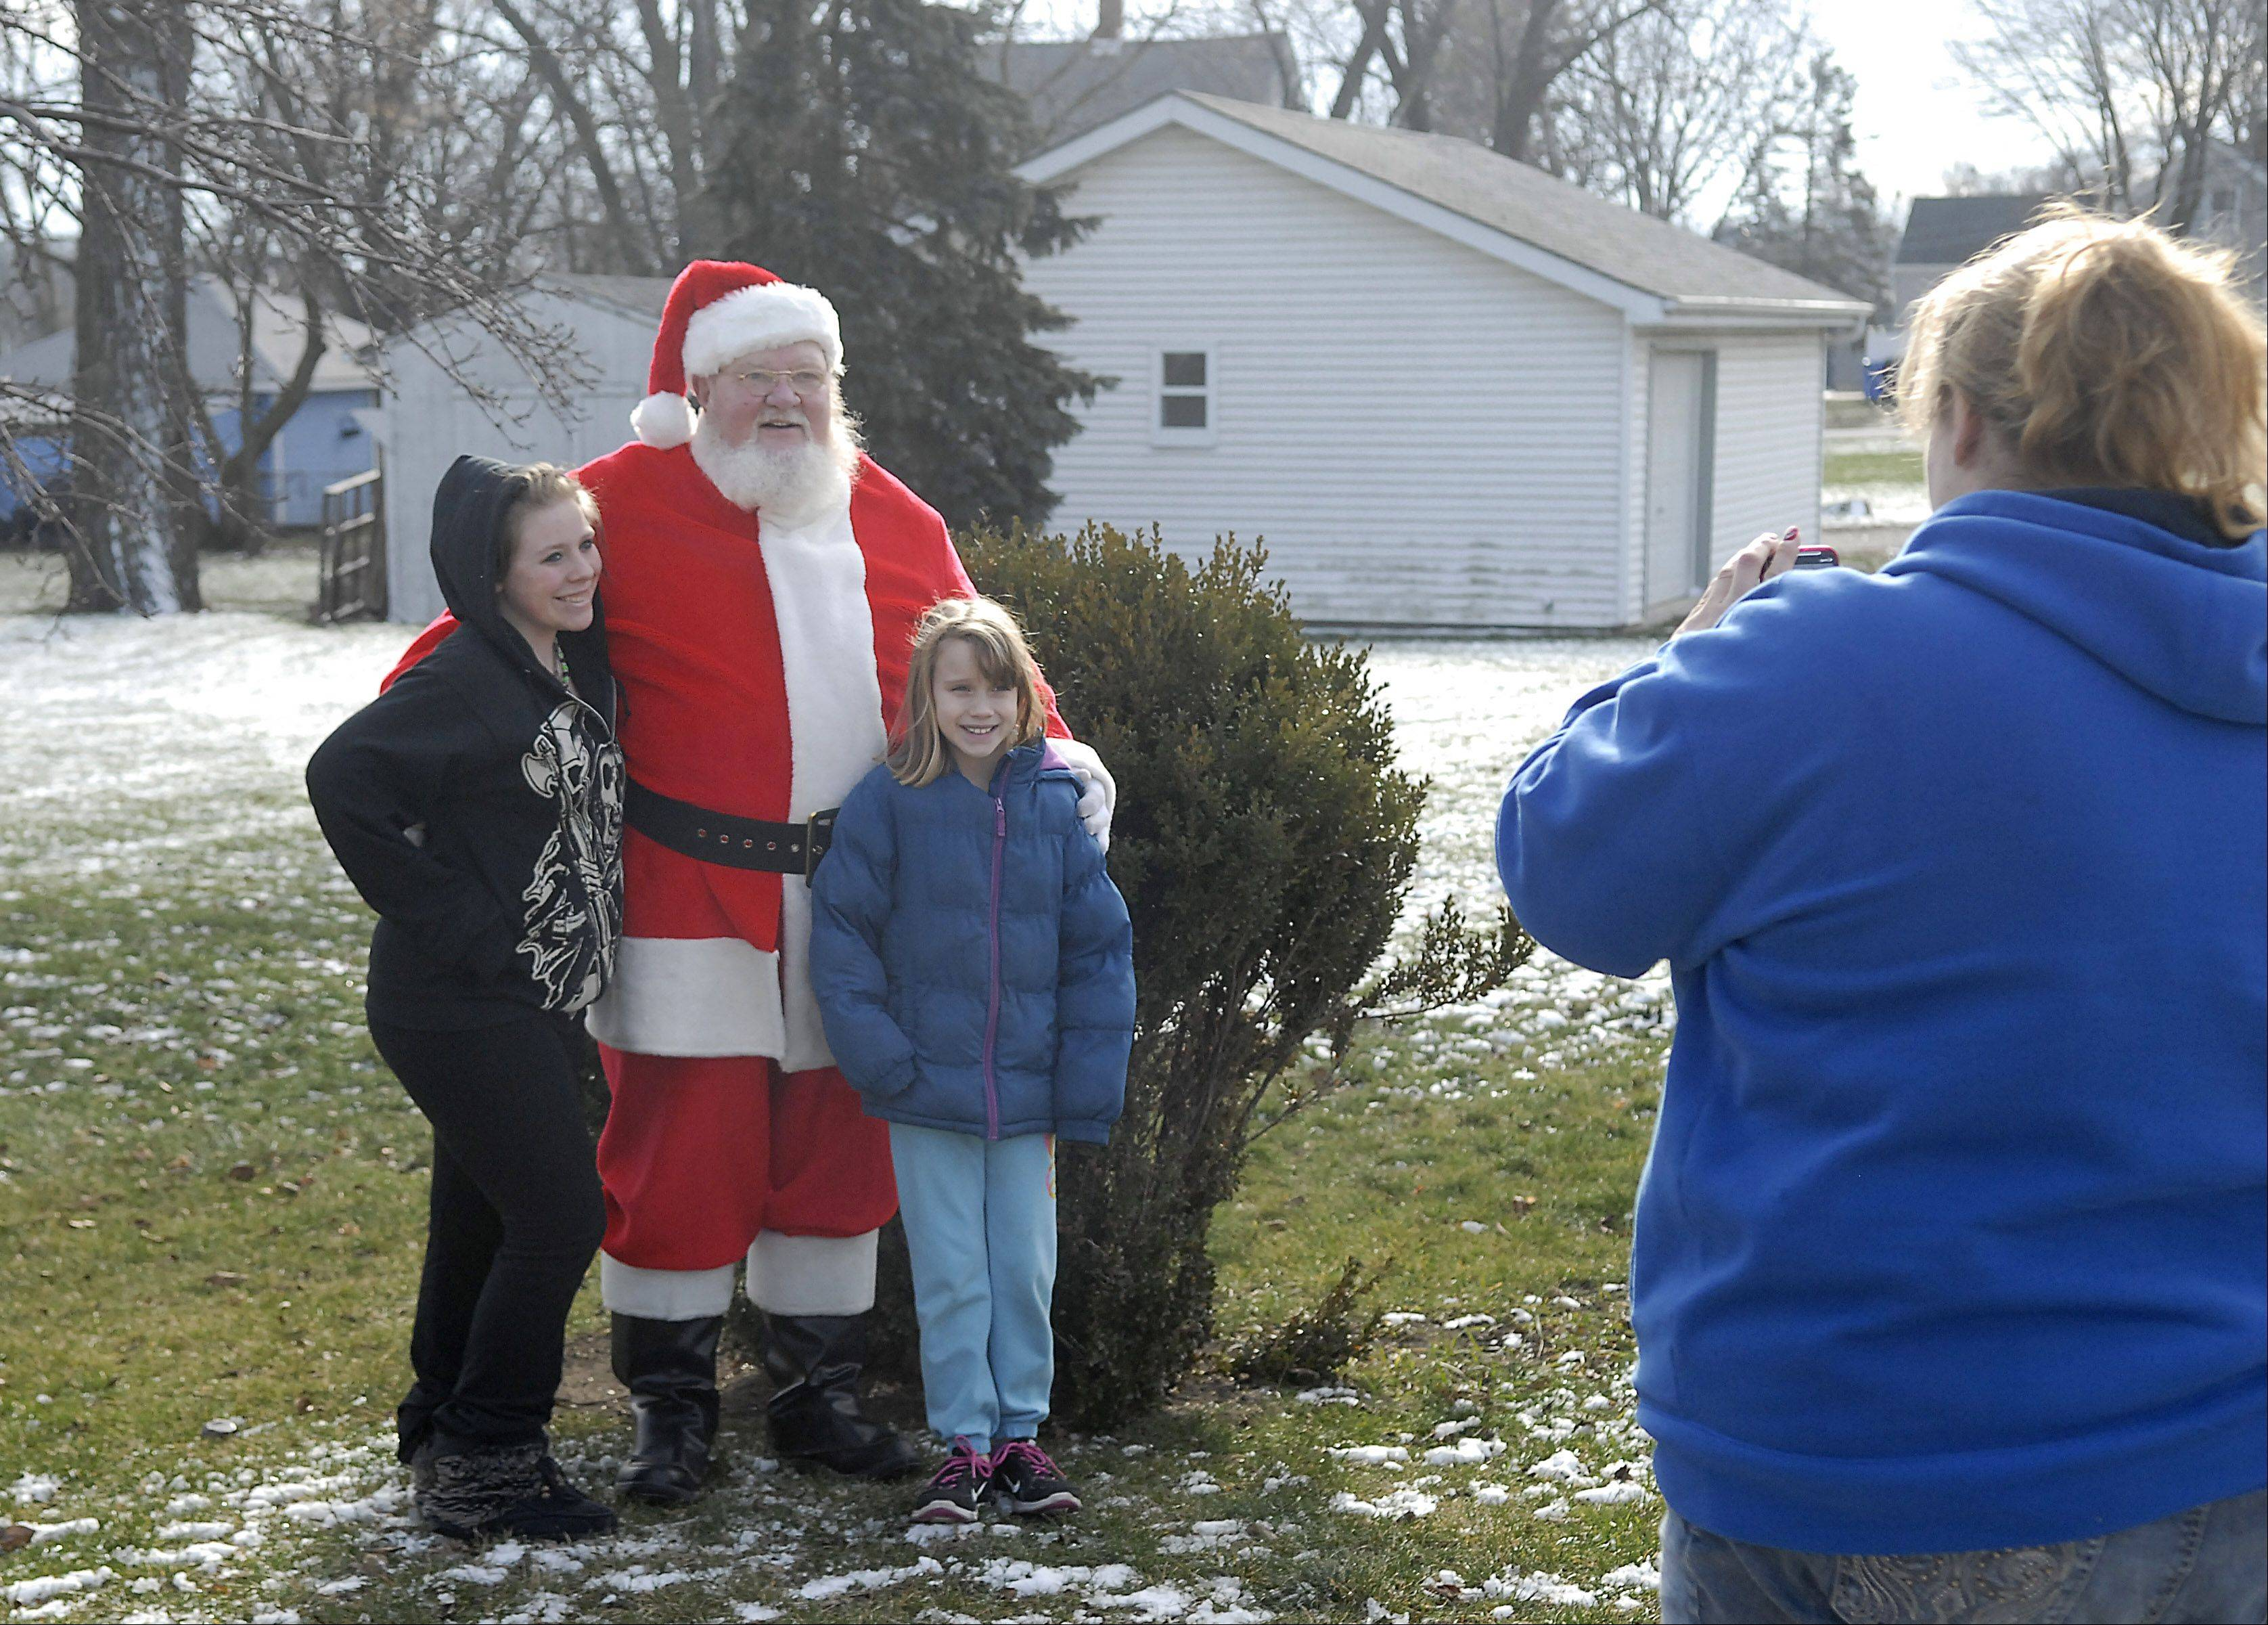 Nichole Gibson of South Elgin takes a photo of her daughters Alyssa Goerr, 16, and Danielle Gibson, 9, with Richard Ahrens of East Dundee in South Elgin yesterday. The empty lot behind them is where Ahrens former home once stood, and is where his tradition of dressing up as Santa for fun started over 20 years ago. Even though he moved to East Dundee about eight years ago, he still comes back to the same corner for a few hours every Christmas Day.